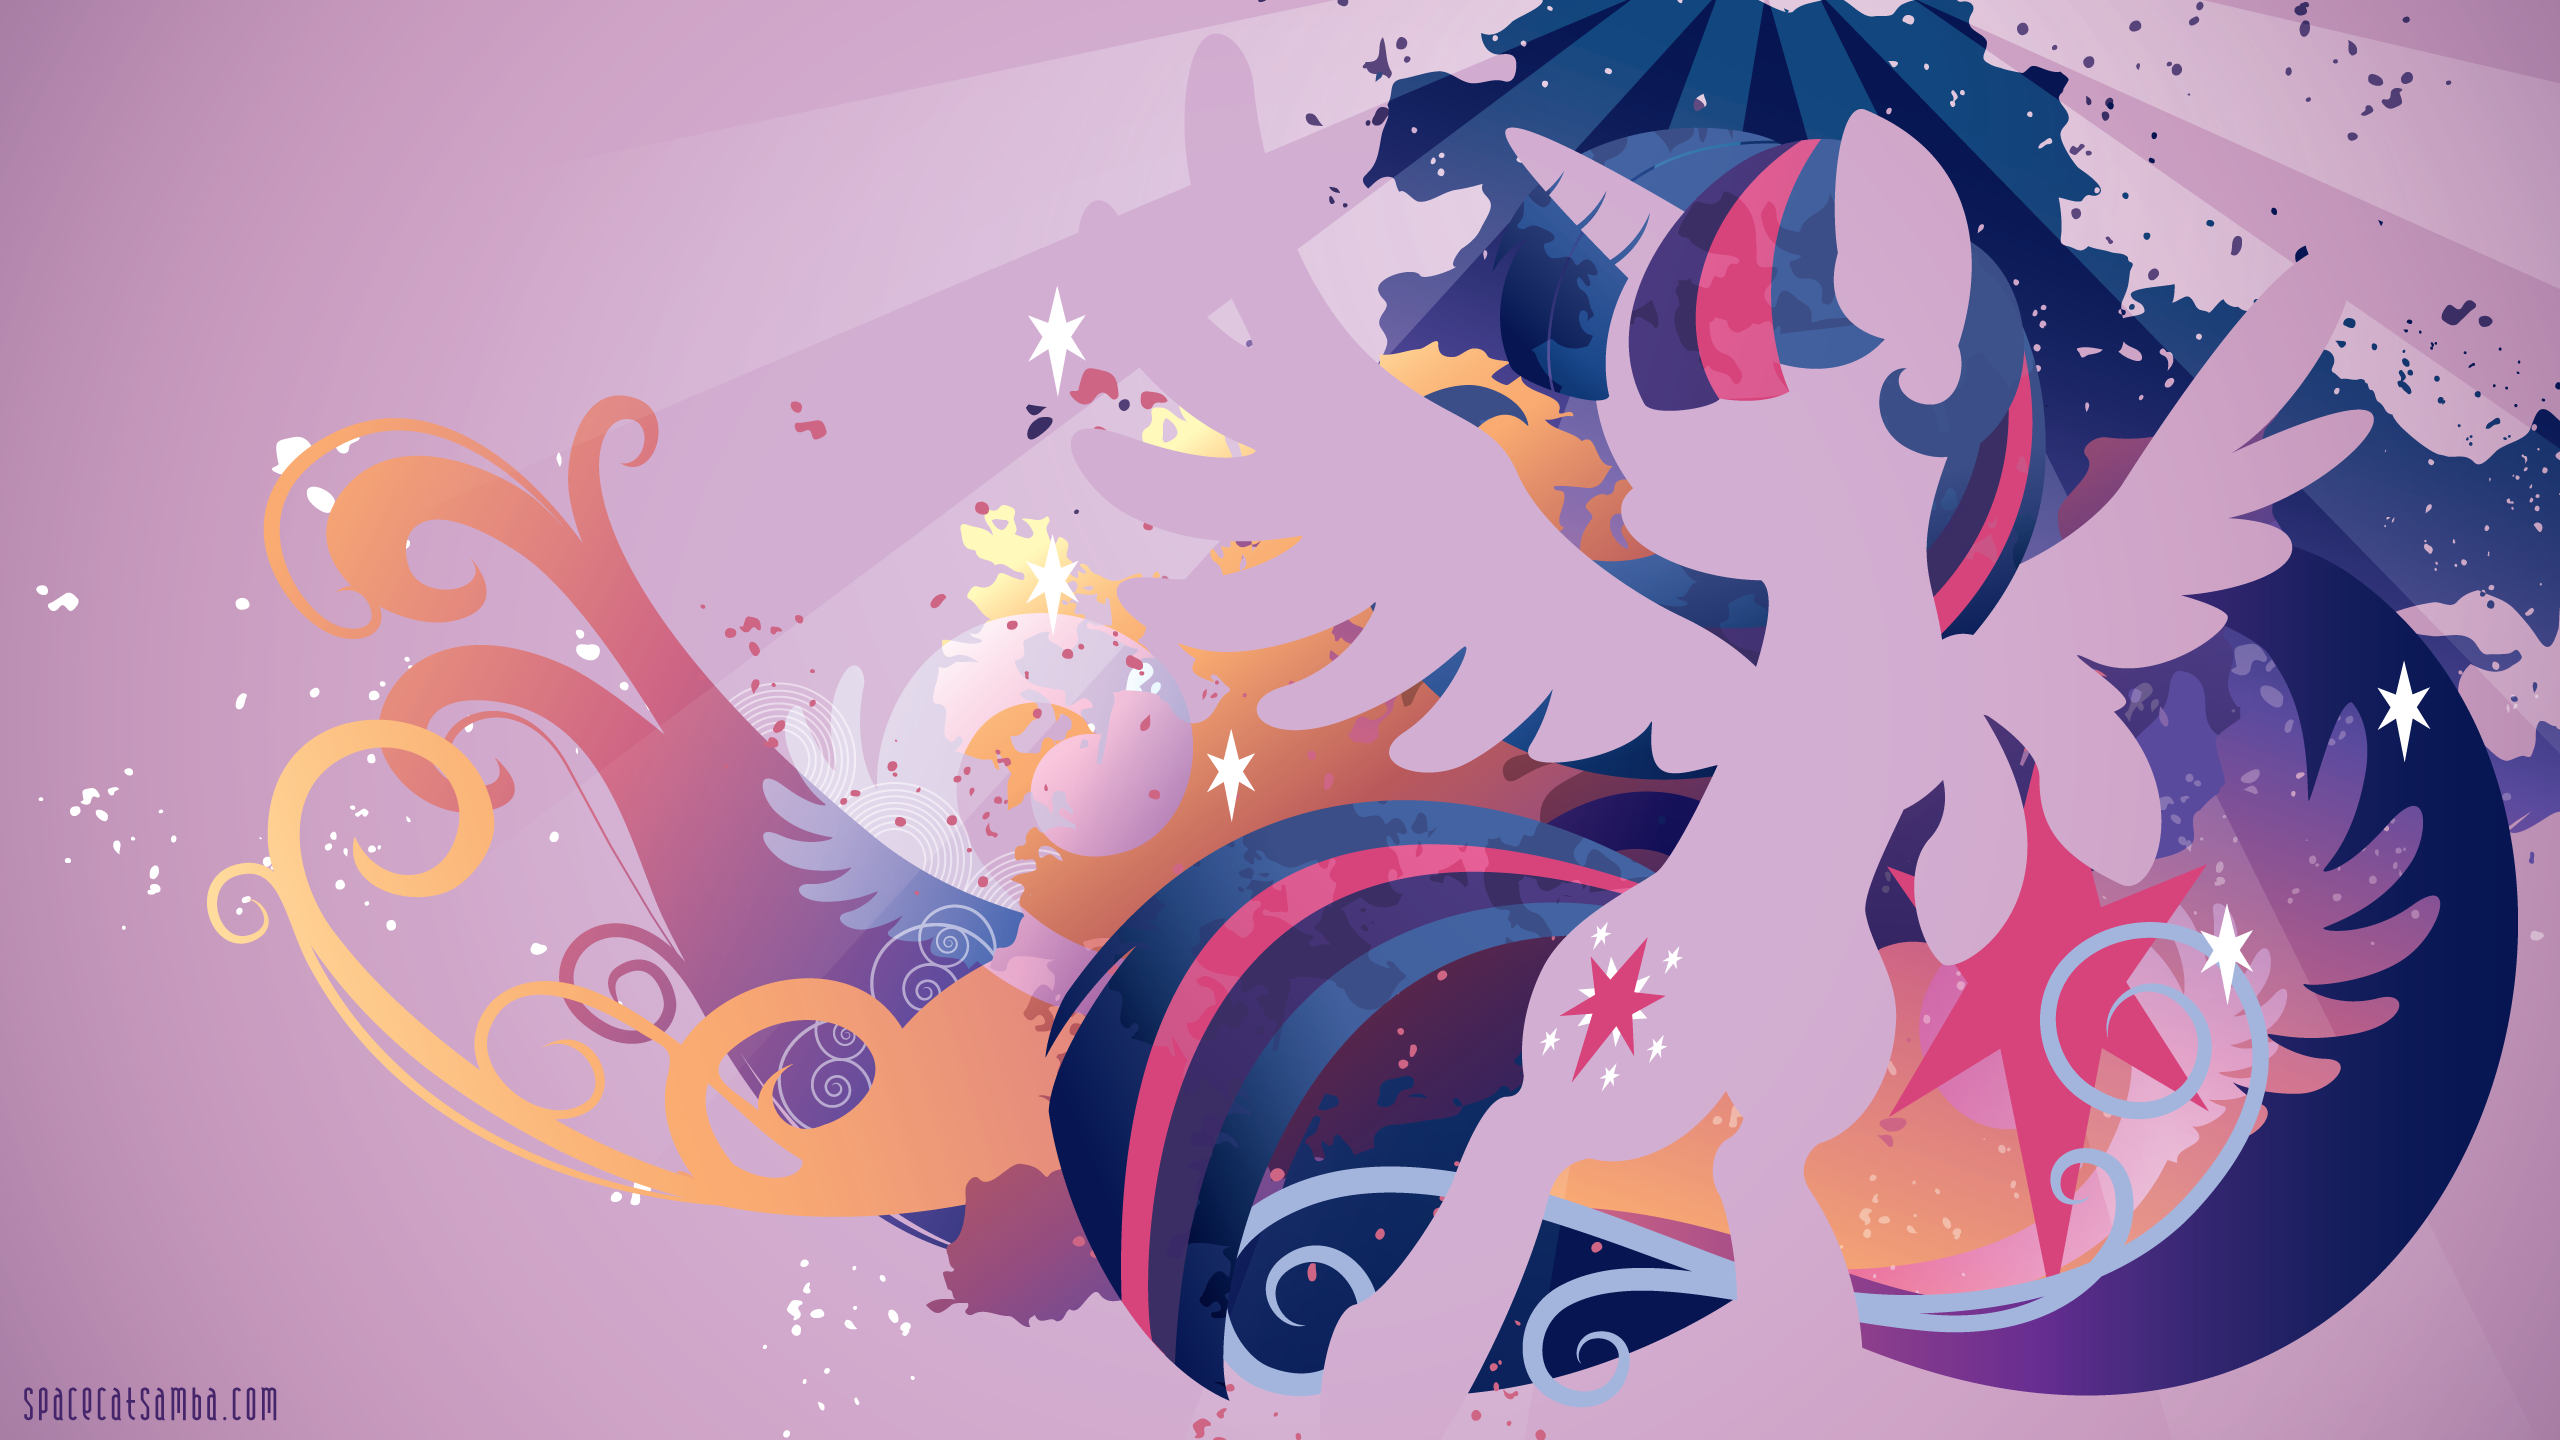 twilight sparkle pony princess friendship wallpapers little 2560x1440 2560x1440